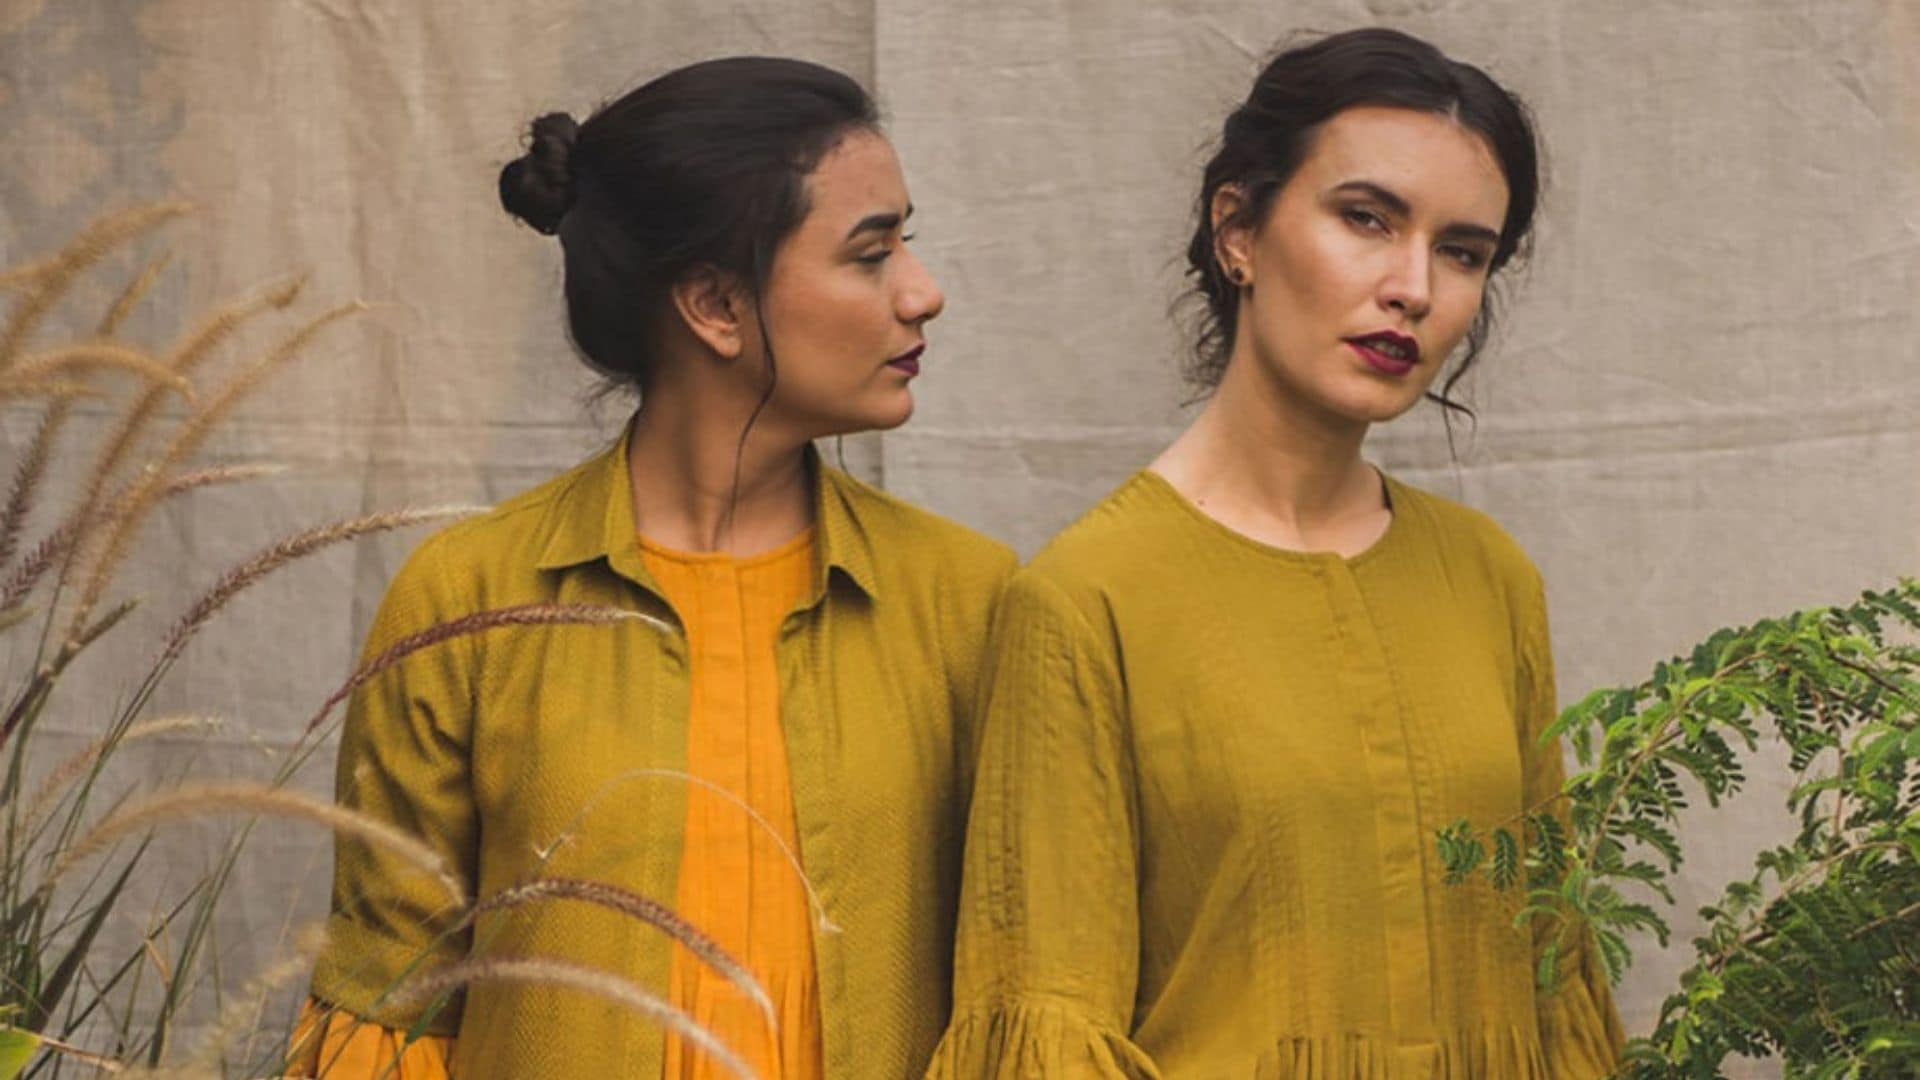 In a bid to lower carbon footprint, a group of Indian designers turns food waste into haute couture